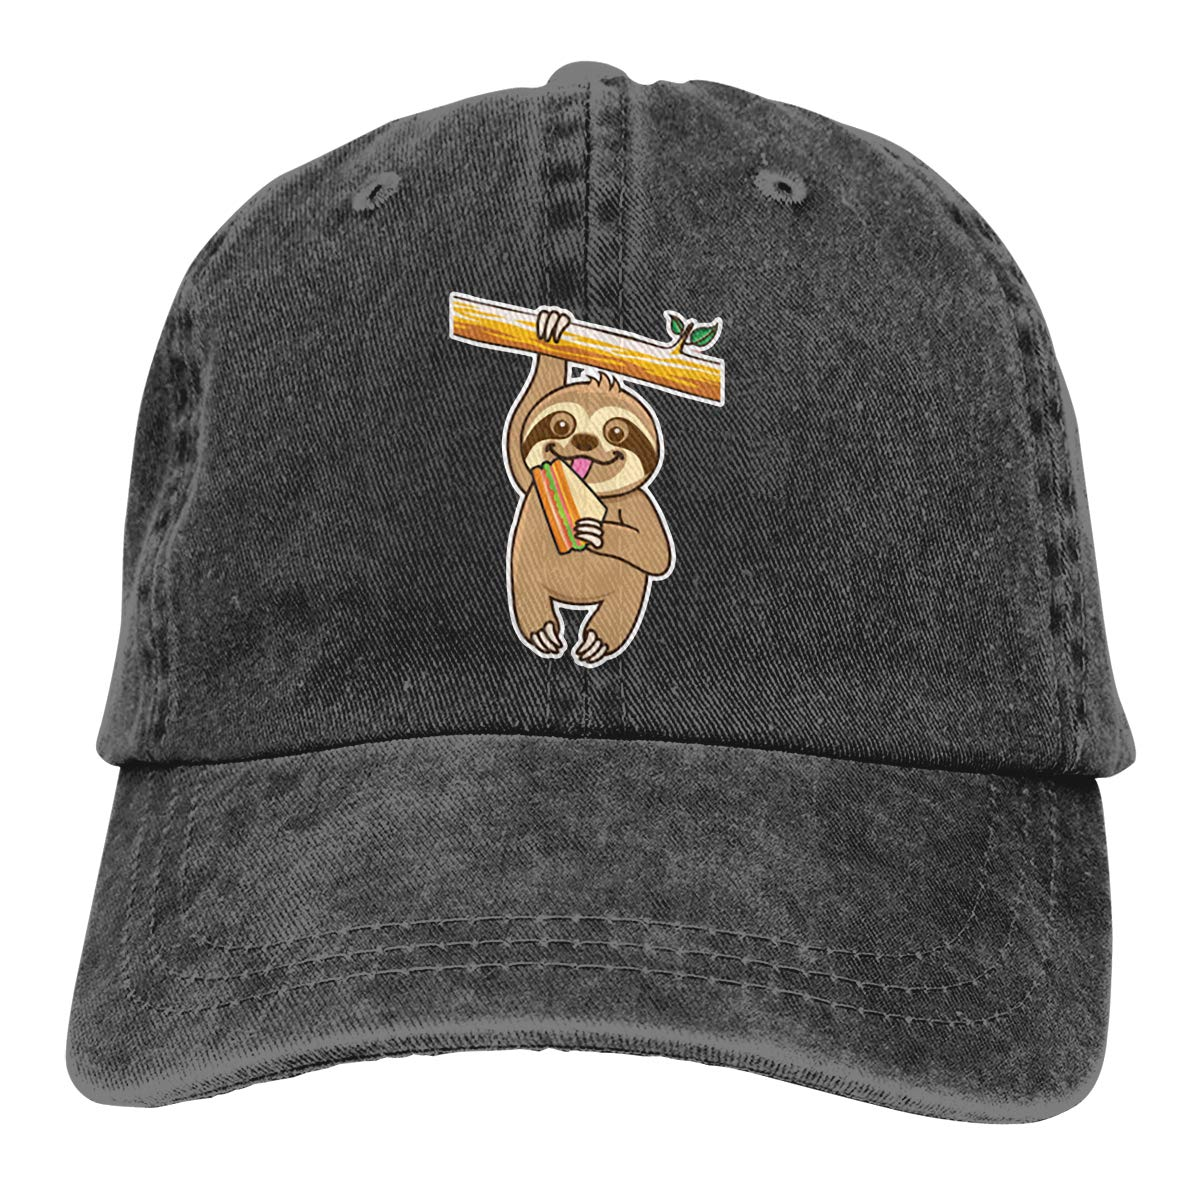 GourtG Sloth and Turtles Denim Baseball Caps Hat Adjustable Cotton Sport Strap Cap for Men Women